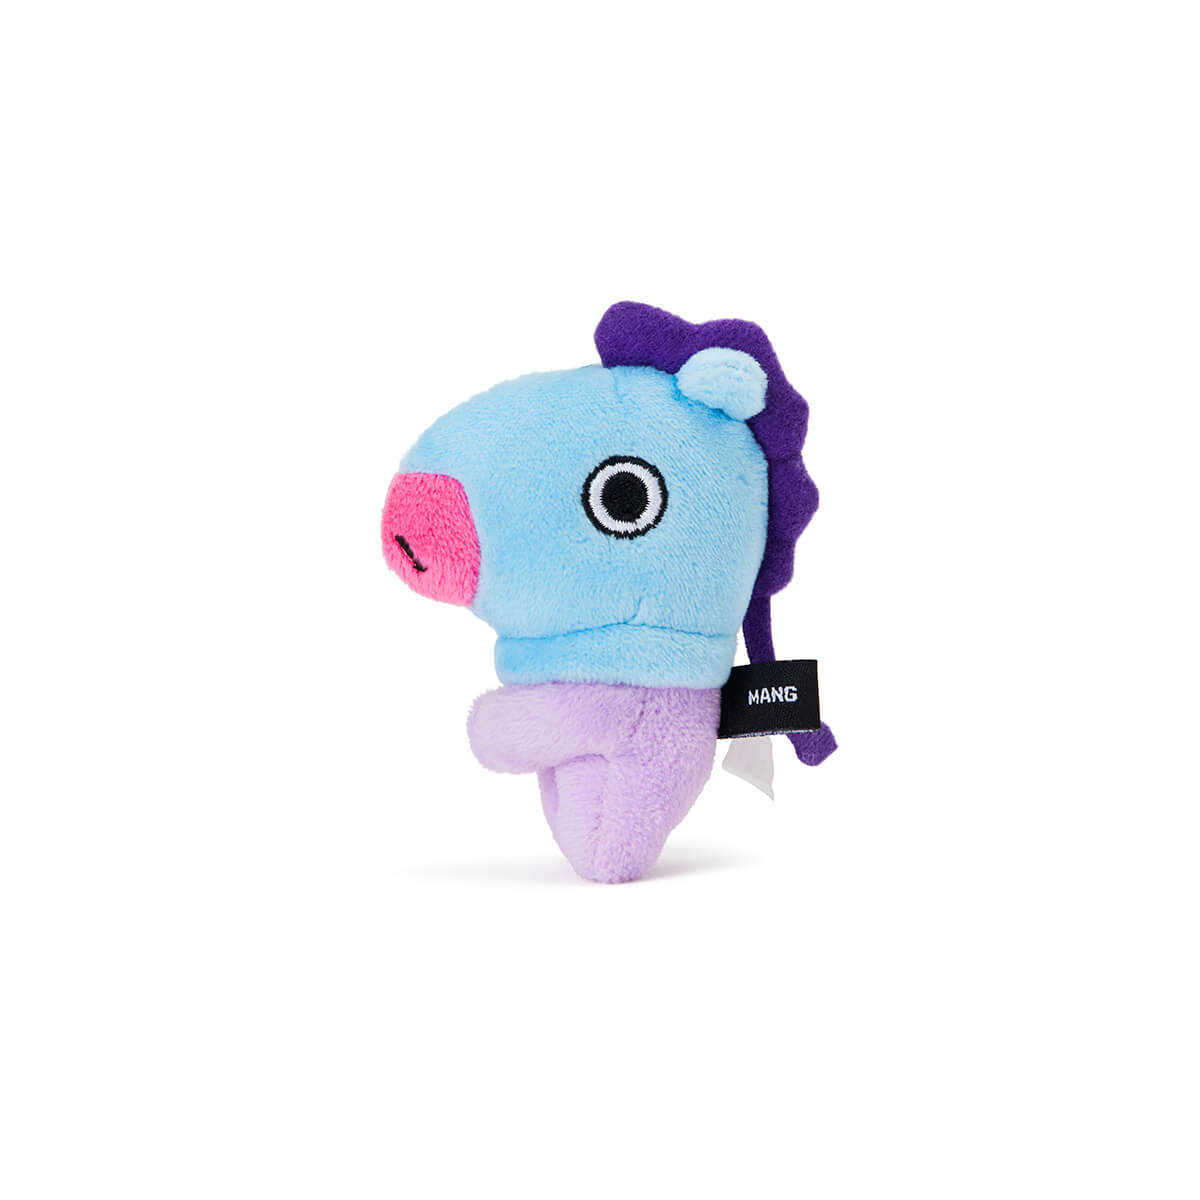 BT21 MANG Plush Magnet